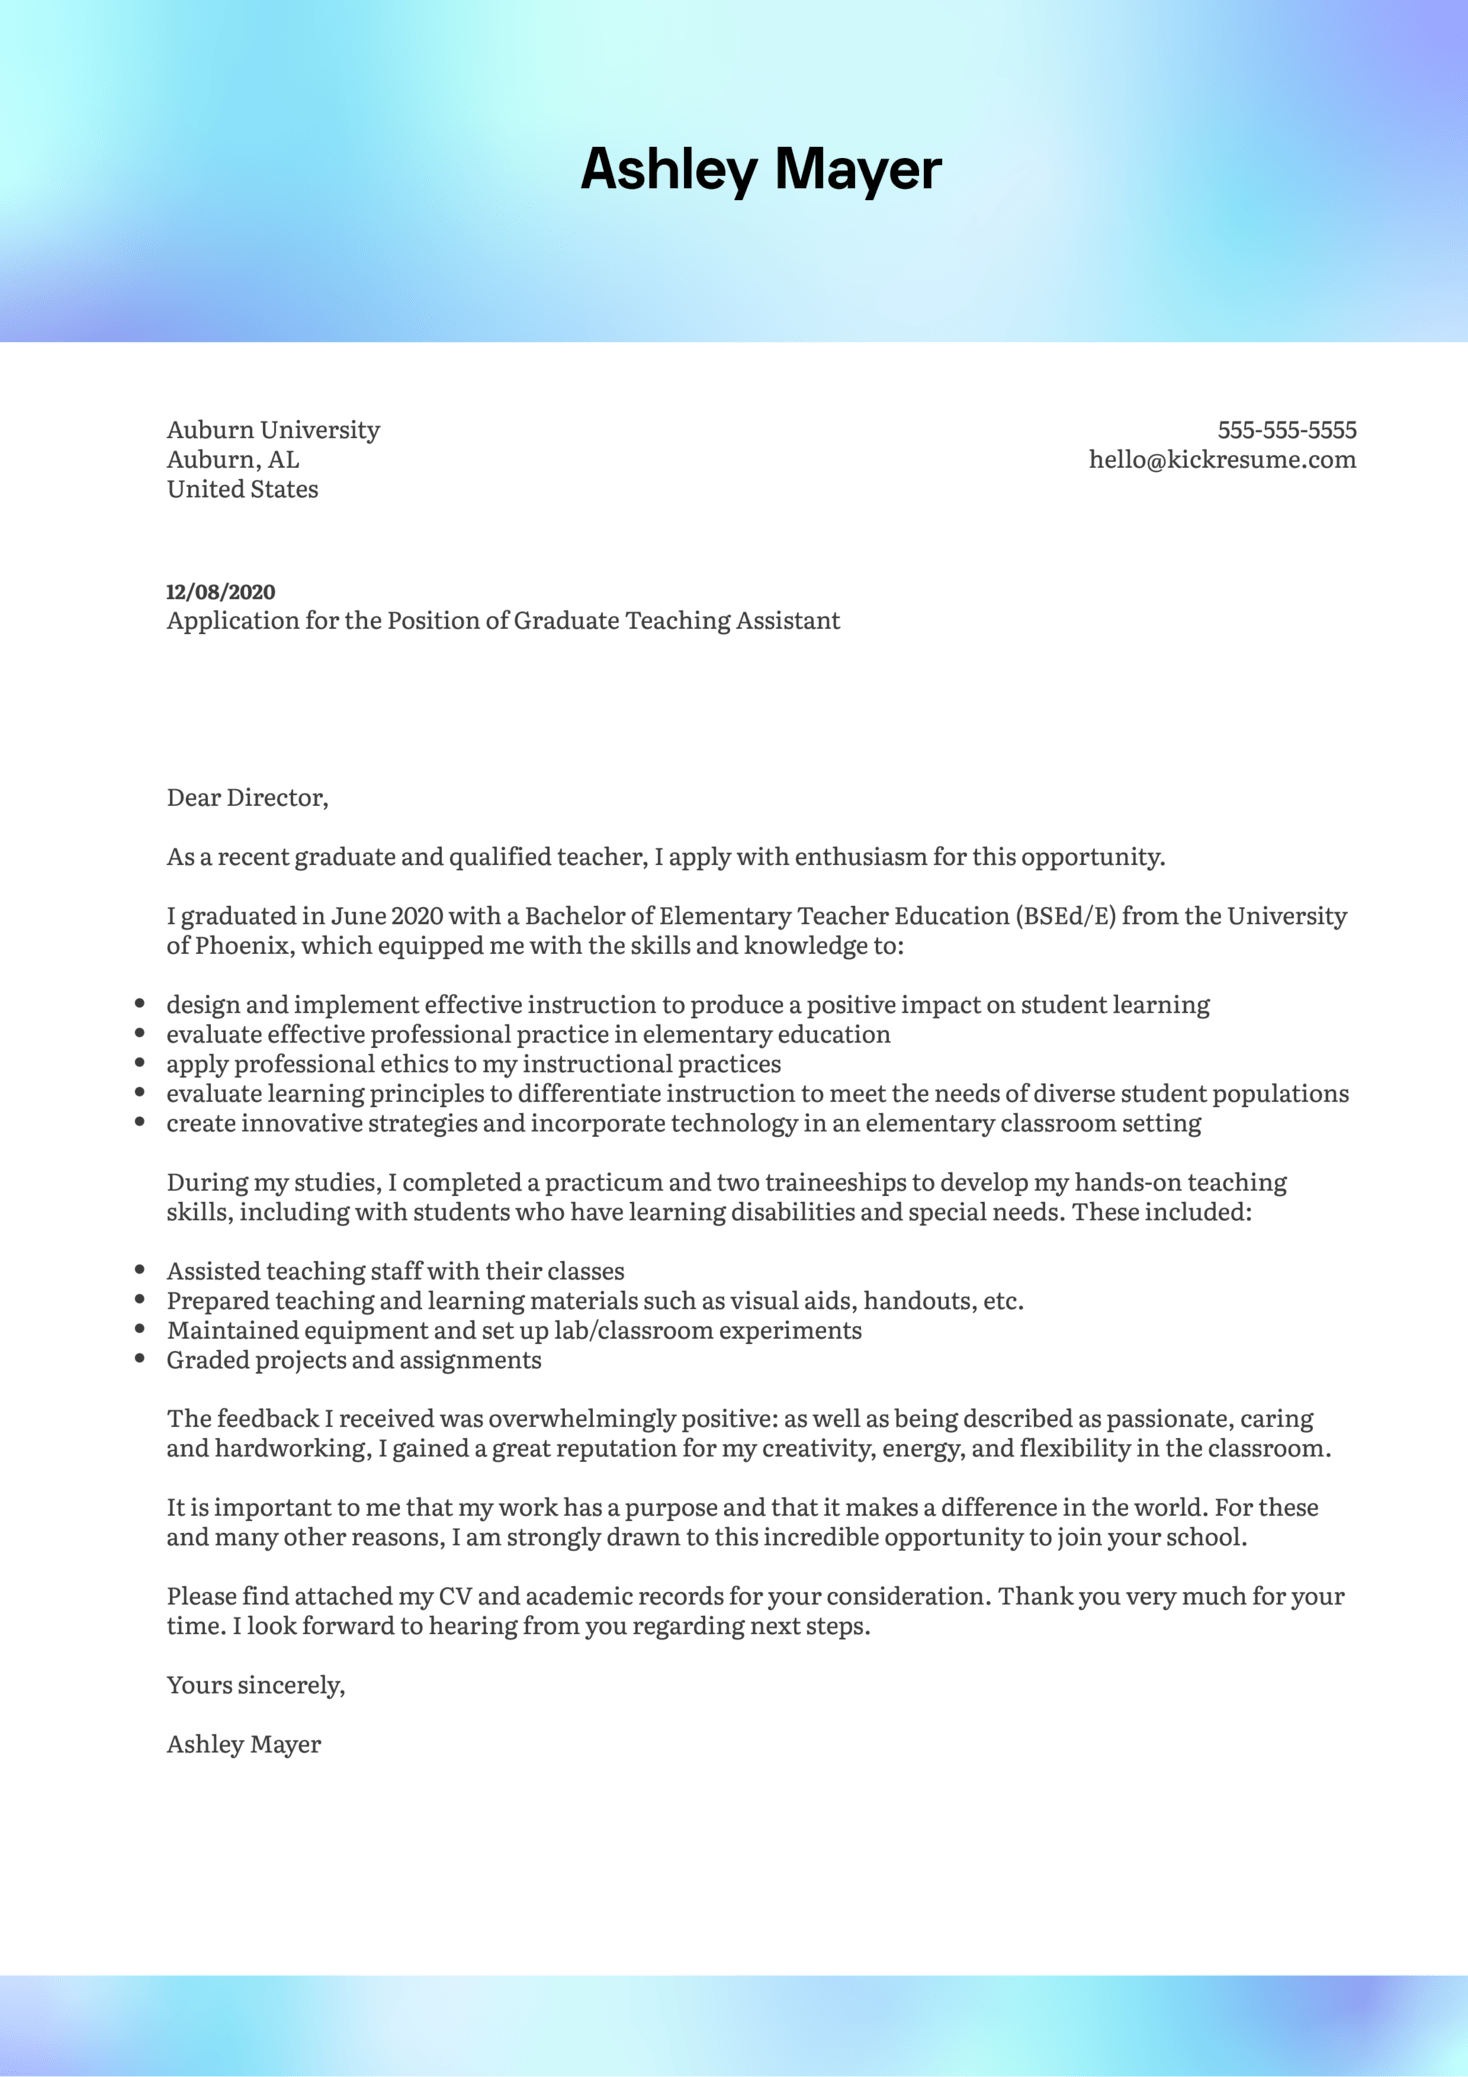 Teaching Assistant Cover Letter Samples from s3-eu-west-1.amazonaws.com